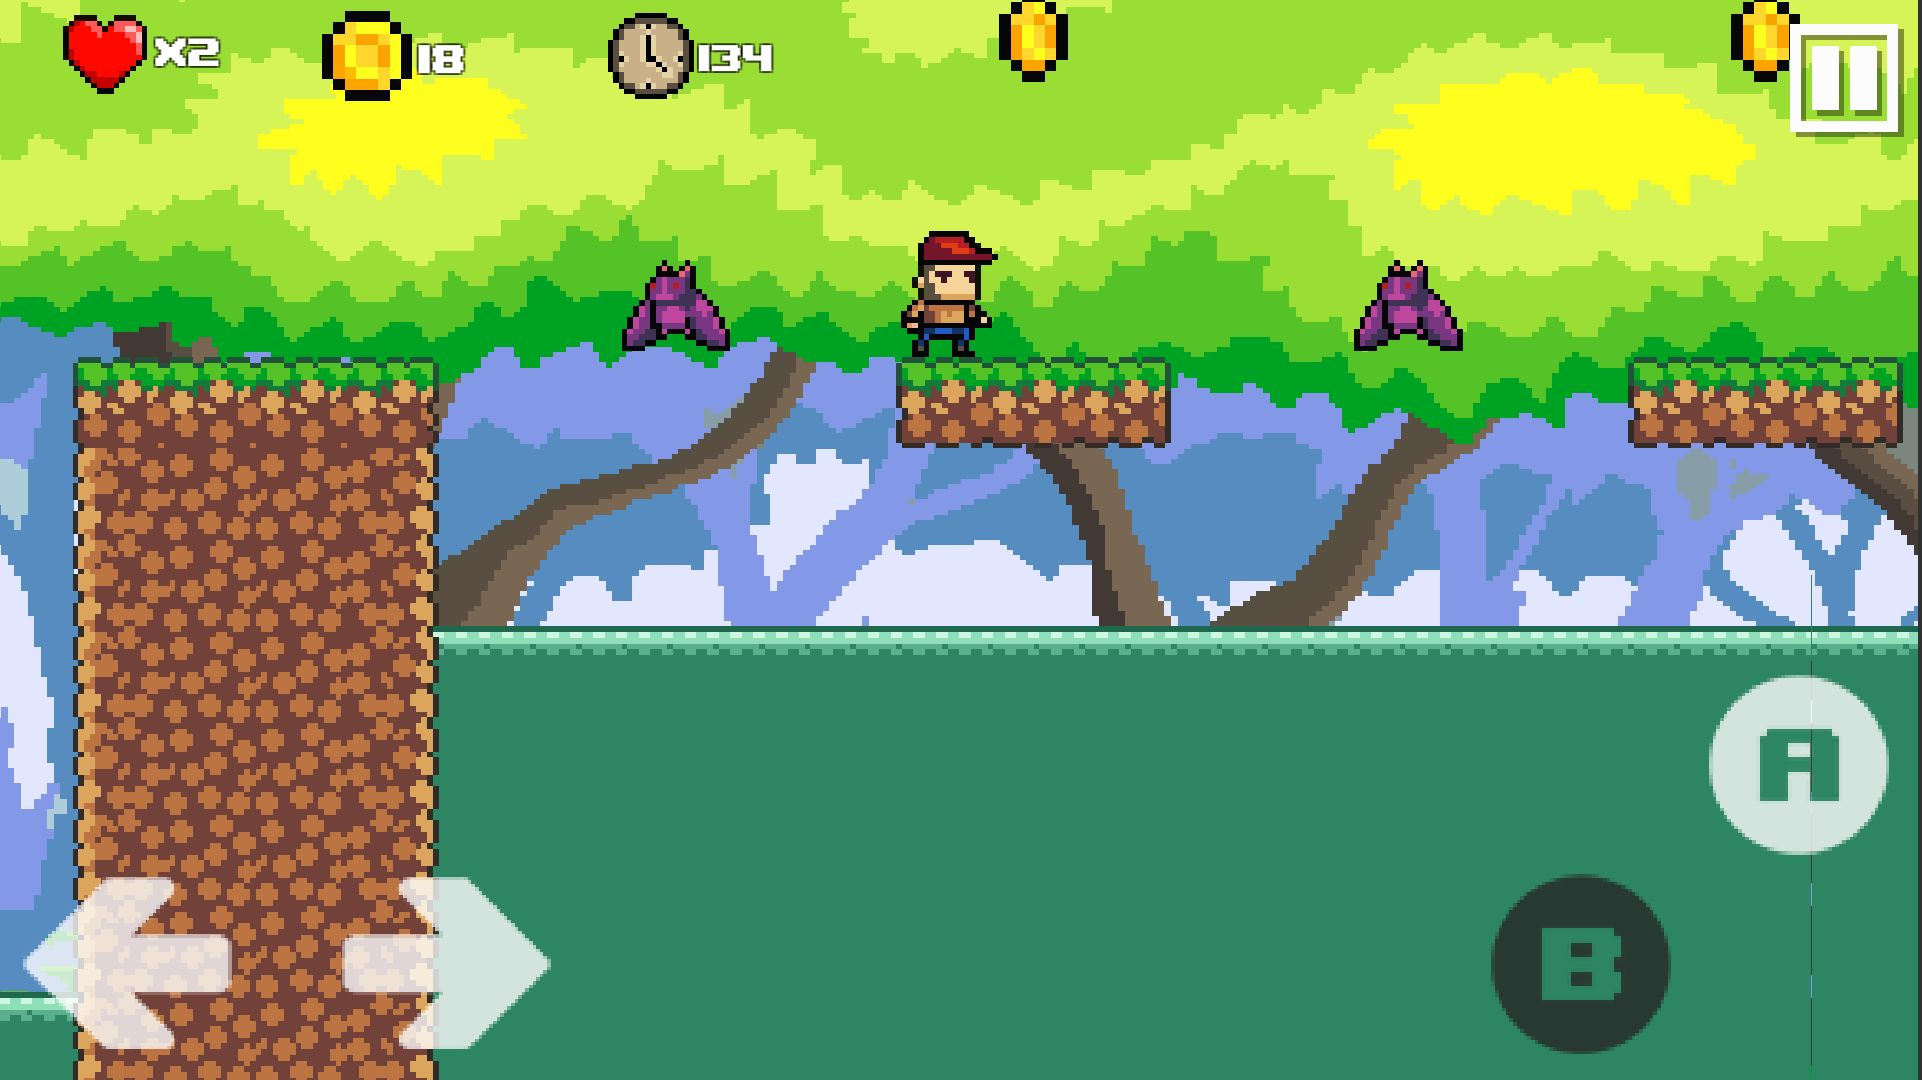 Pix Jungle Adventure - Unity Project Screenshot 2